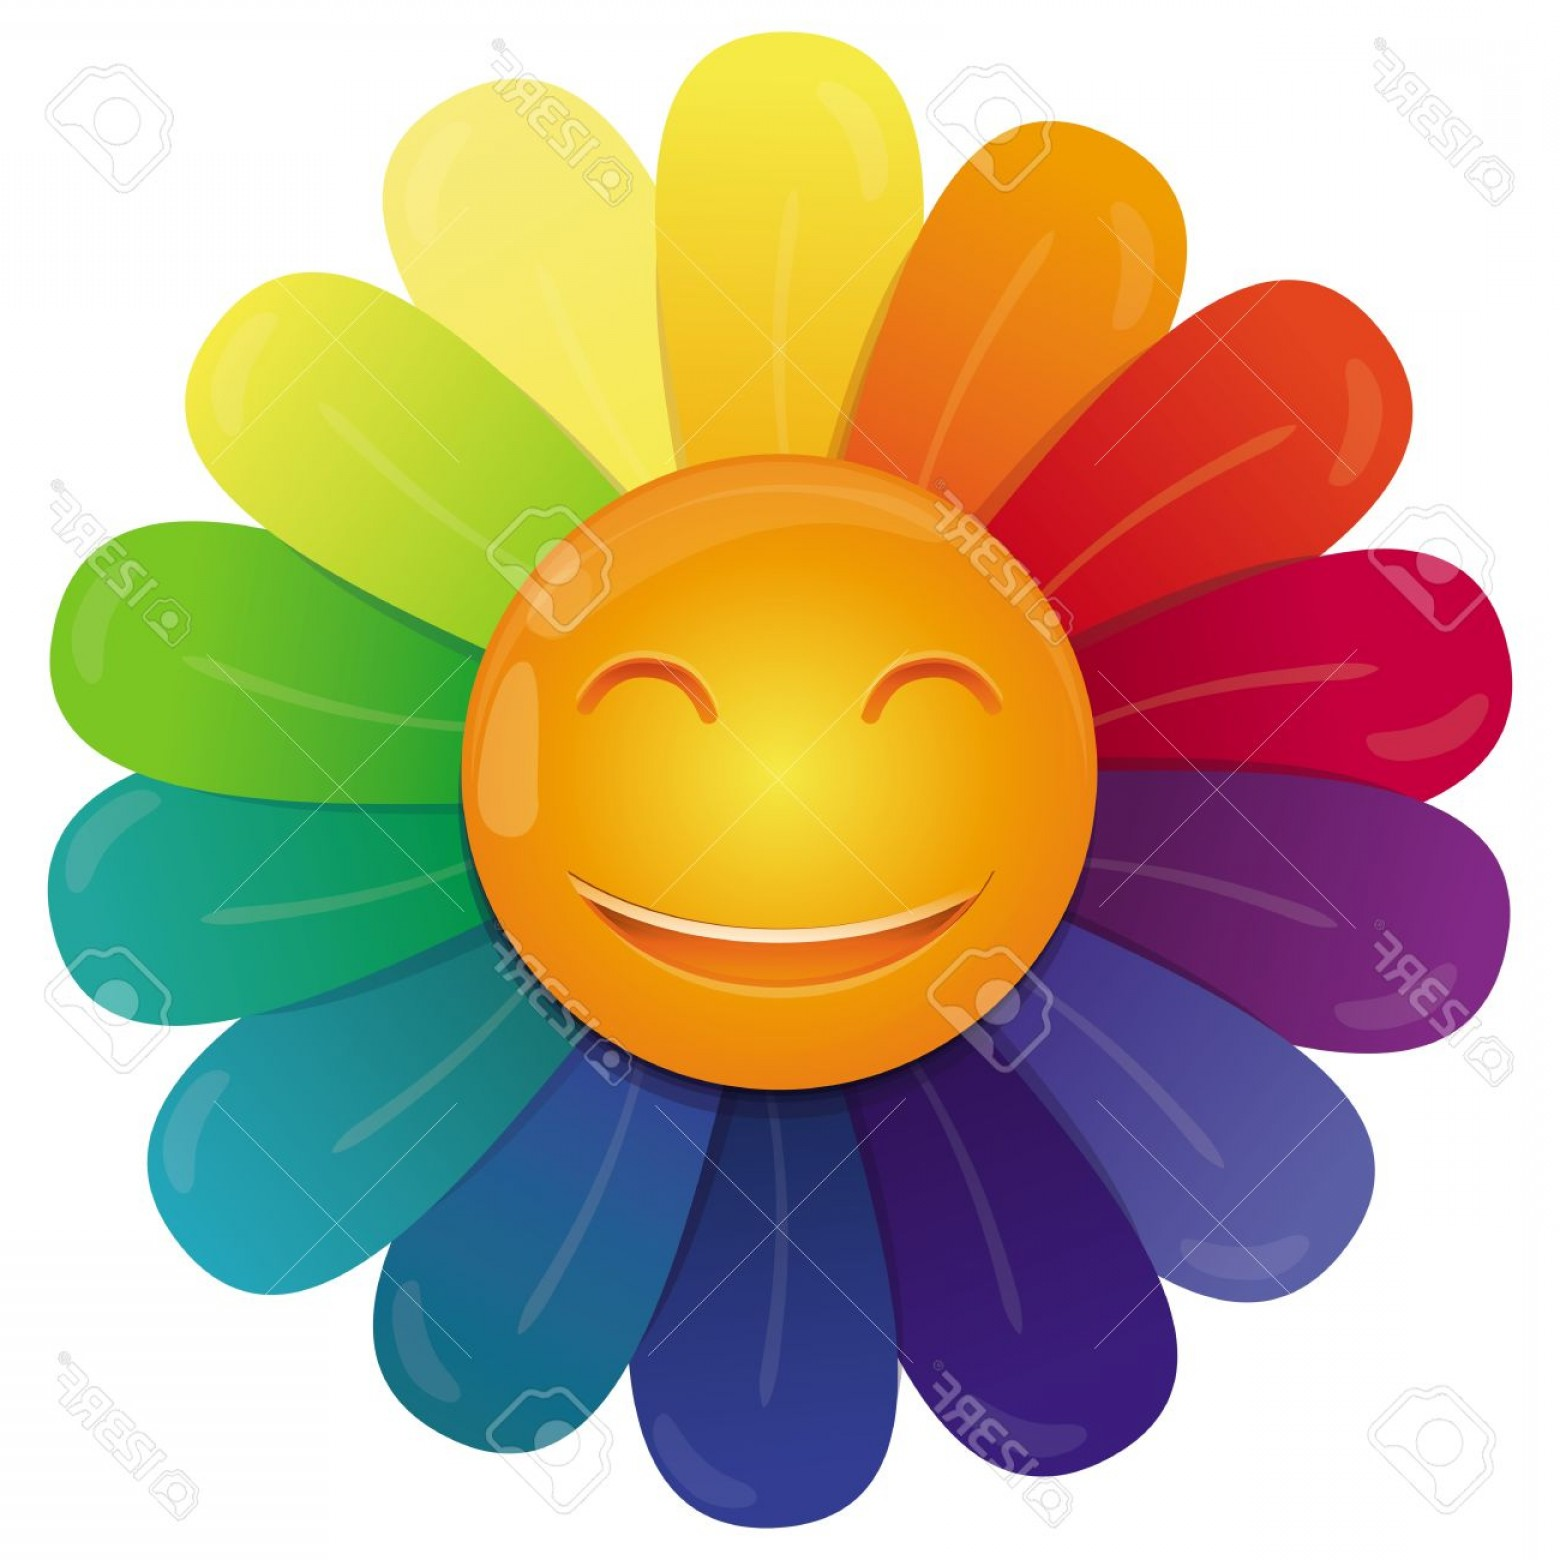 Rainbow Face Emoji Vector: Photovector Rainbow Flower With Multi Colored Petals And Funny Face